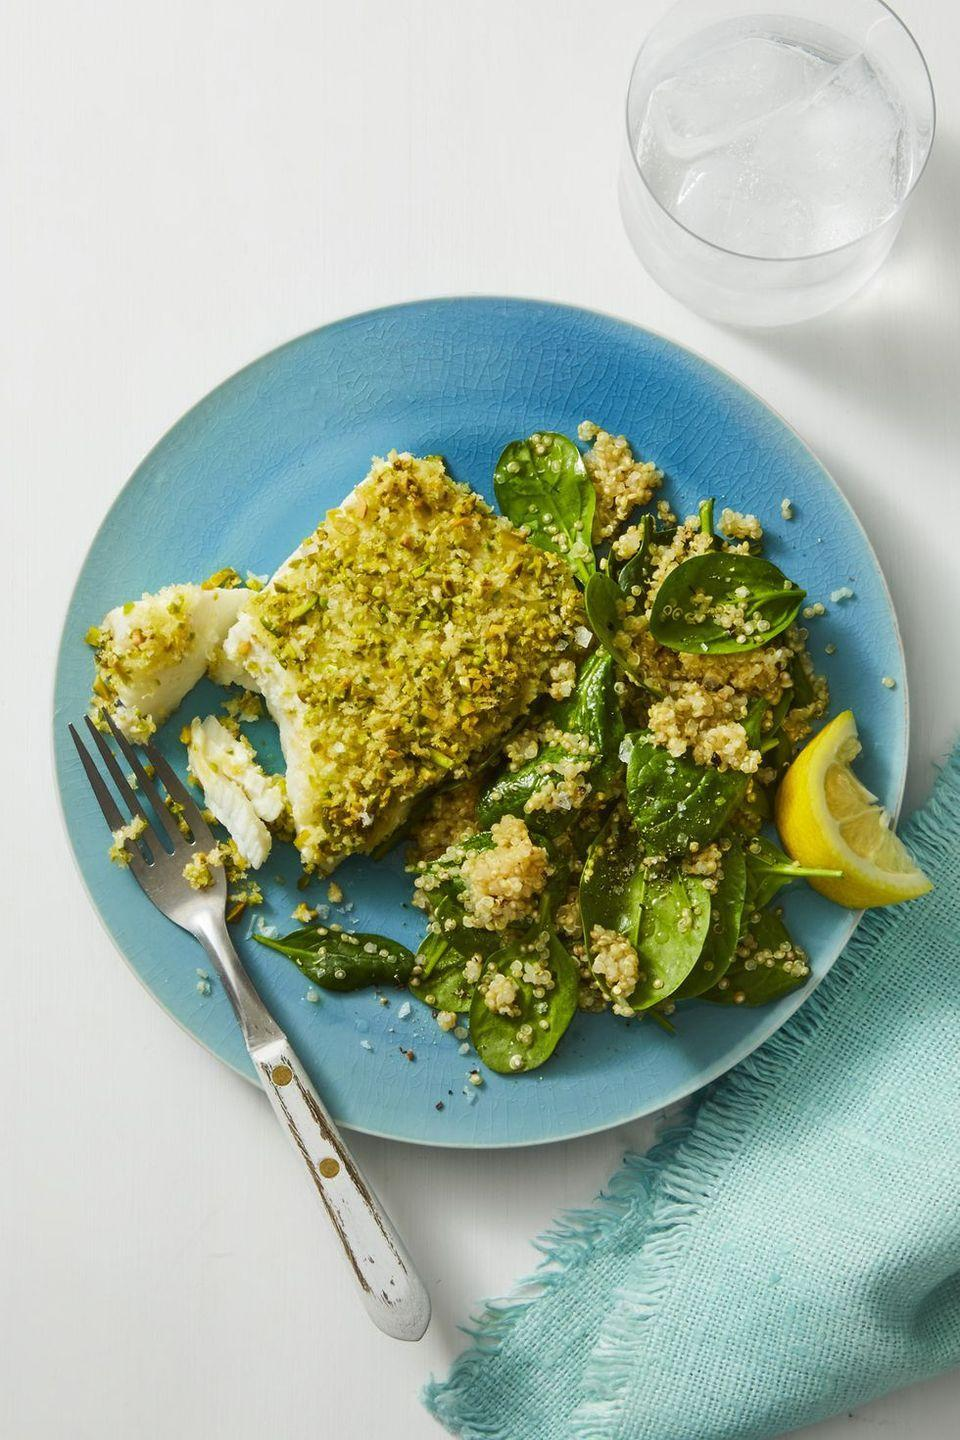 """<p>This flavorful dinner is packed with good-for-you ingredients like quinoa, fish, Greek yogurt, and spinach.</p><p><em><a href=""""https://www.womansday.com/food-recipes/food-drinks/a19758207/pistachio-crusted-fish-recipe/"""" rel=""""nofollow noopener"""" target=""""_blank"""" data-ylk=""""slk:Get the Pistachio-Crusted Fish recipe."""" class=""""link rapid-noclick-resp"""">Get the Pistachio-Crusted Fish recipe.</a></em></p><p><strong>What you'll need</strong>: <a href=""""https://www.amazon.com/dp/B01K47M5II/"""" rel=""""nofollow noopener"""" target=""""_blank"""" data-ylk=""""slk:Nonstick baking sheet"""" class=""""link rapid-noclick-resp"""">Nonstick baking sheet </a>($10, Amazon)</p>"""